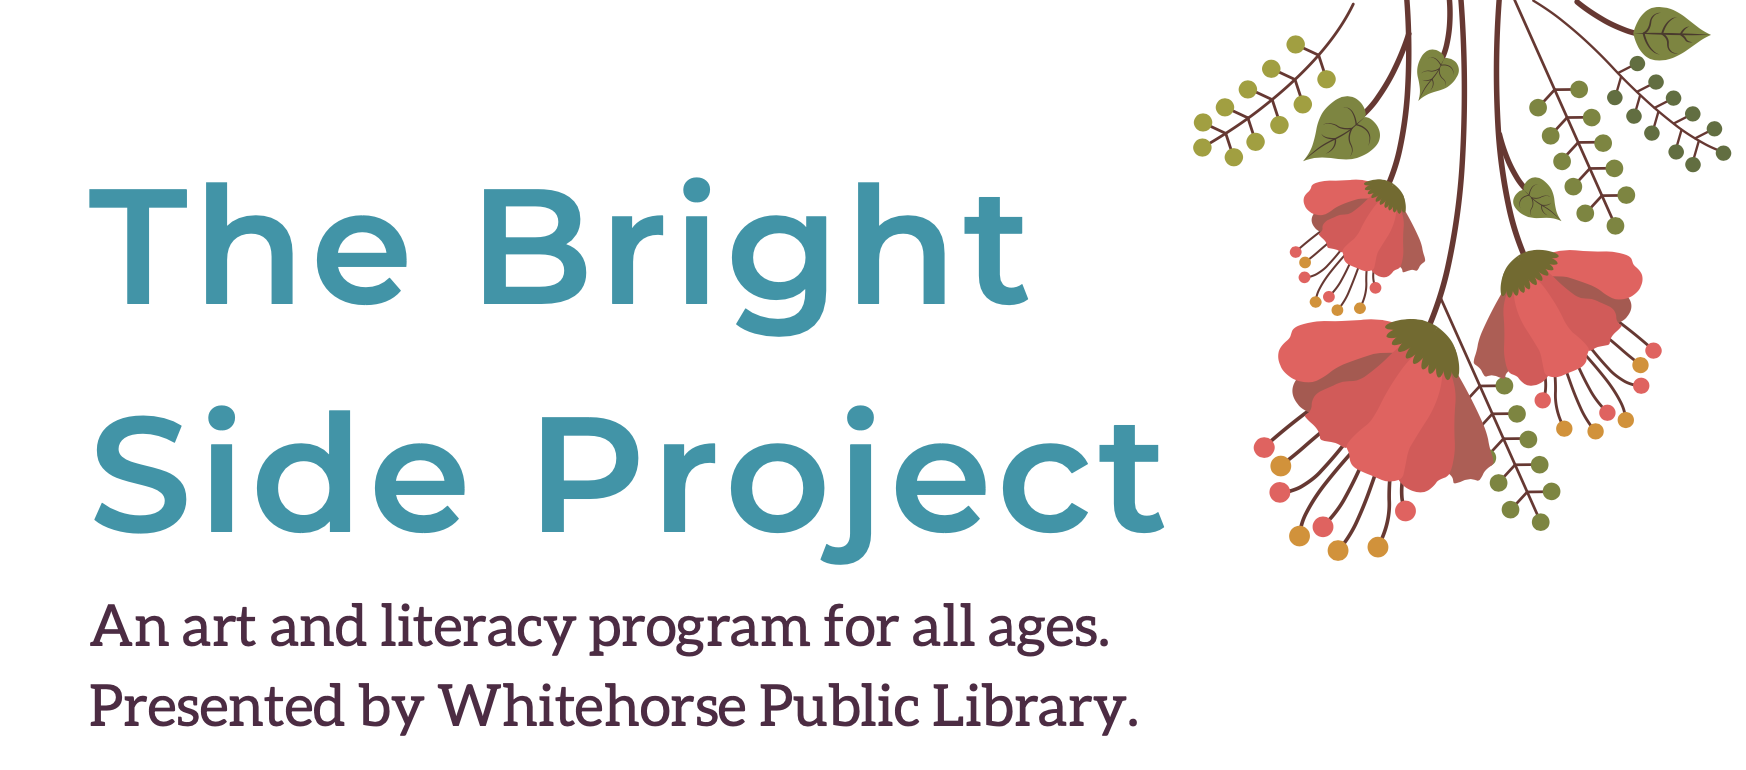 The Bright Side Project